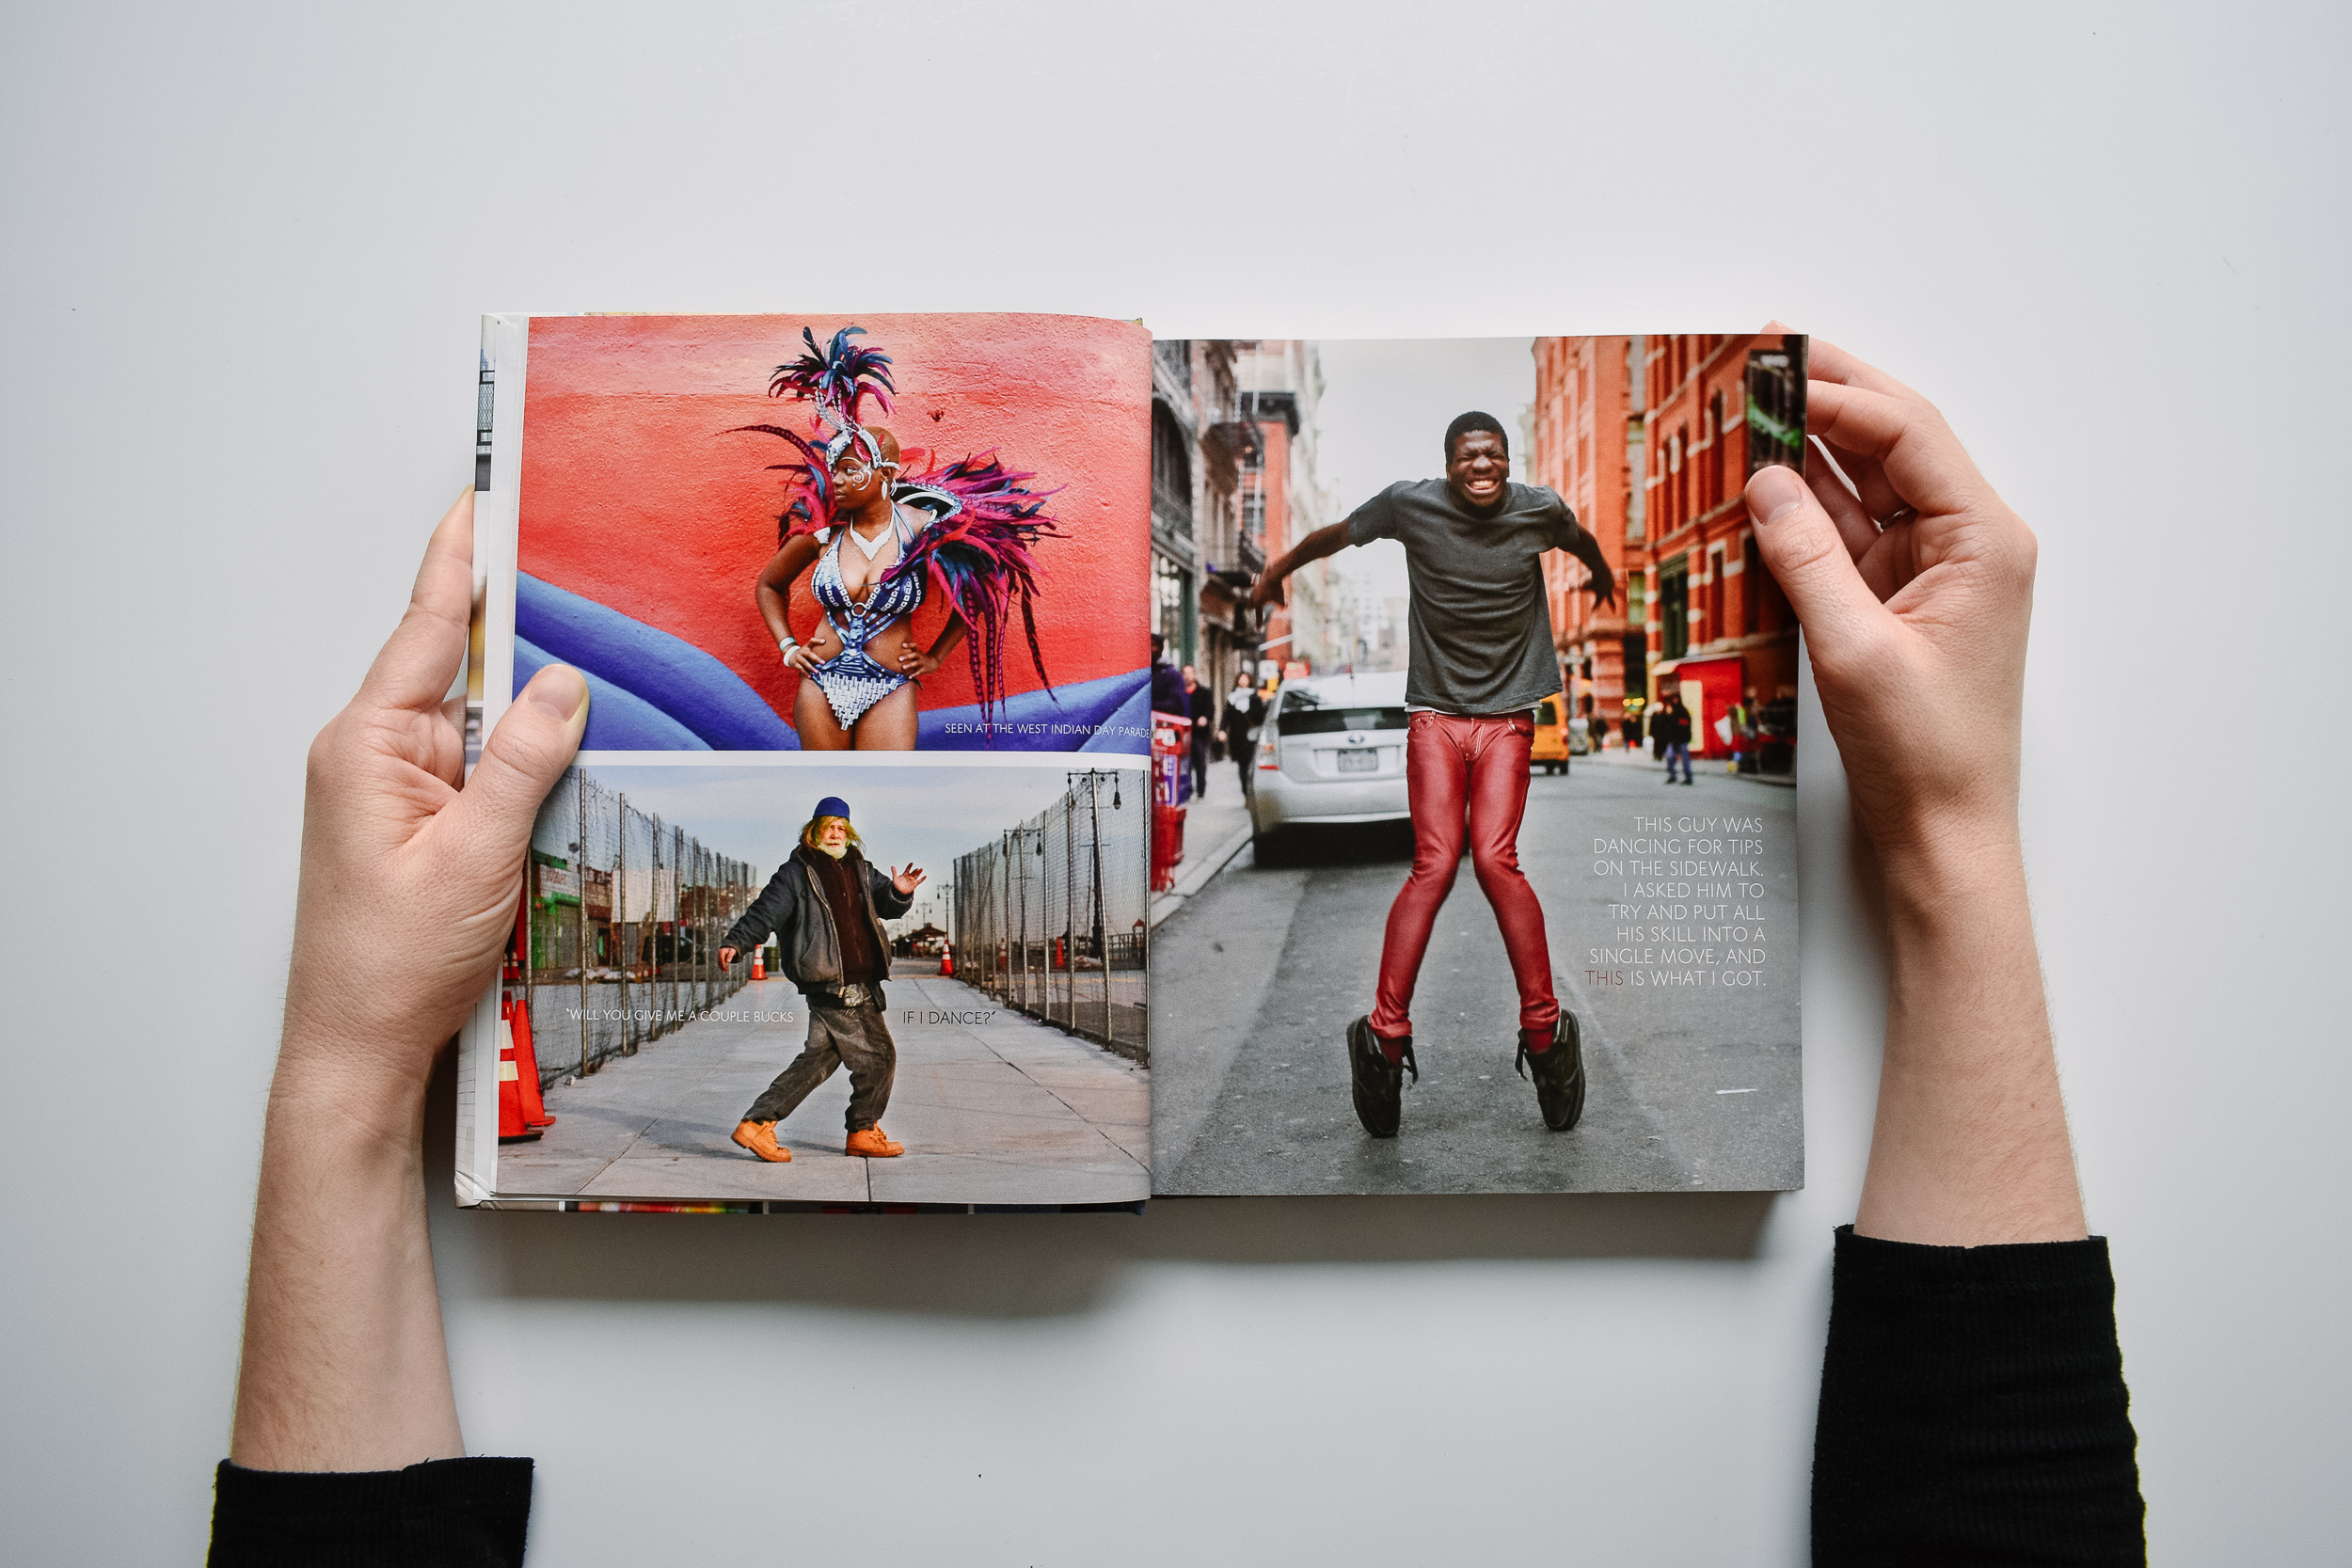 Humans of New York - This photoblog that started in the streets of New York City in 2010 has grown into a worldwide cultural phenomenon. Brandon Stanton has shared stories that bring humanity and empathy to every corner of the world, spurring over $12M in charitable giving.